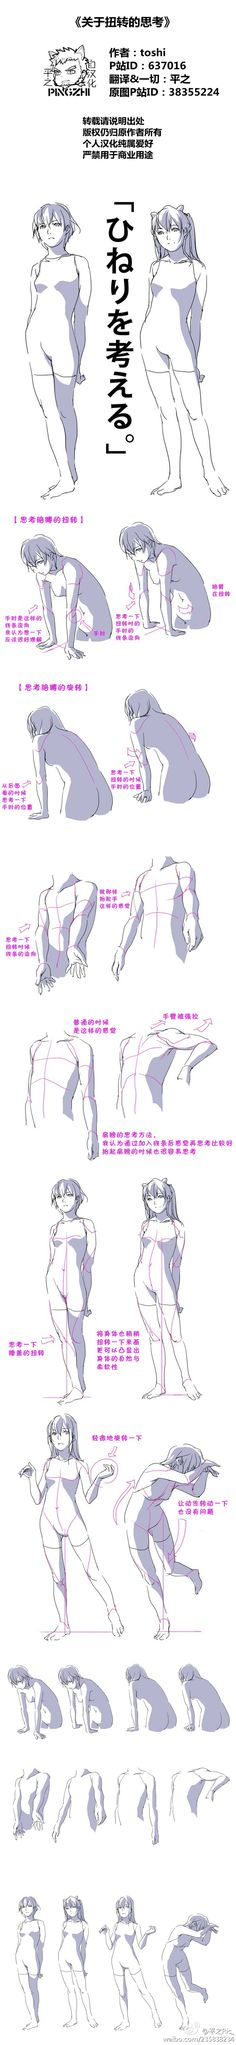 Female posed and anatomy, shoulders, arms, hands Drawing Poses, Drawing Tips, Drawing Sketches, Art Drawings, Body Drawing, Manga Drawing, Figure Drawing, Anatomy Reference, Body Reference